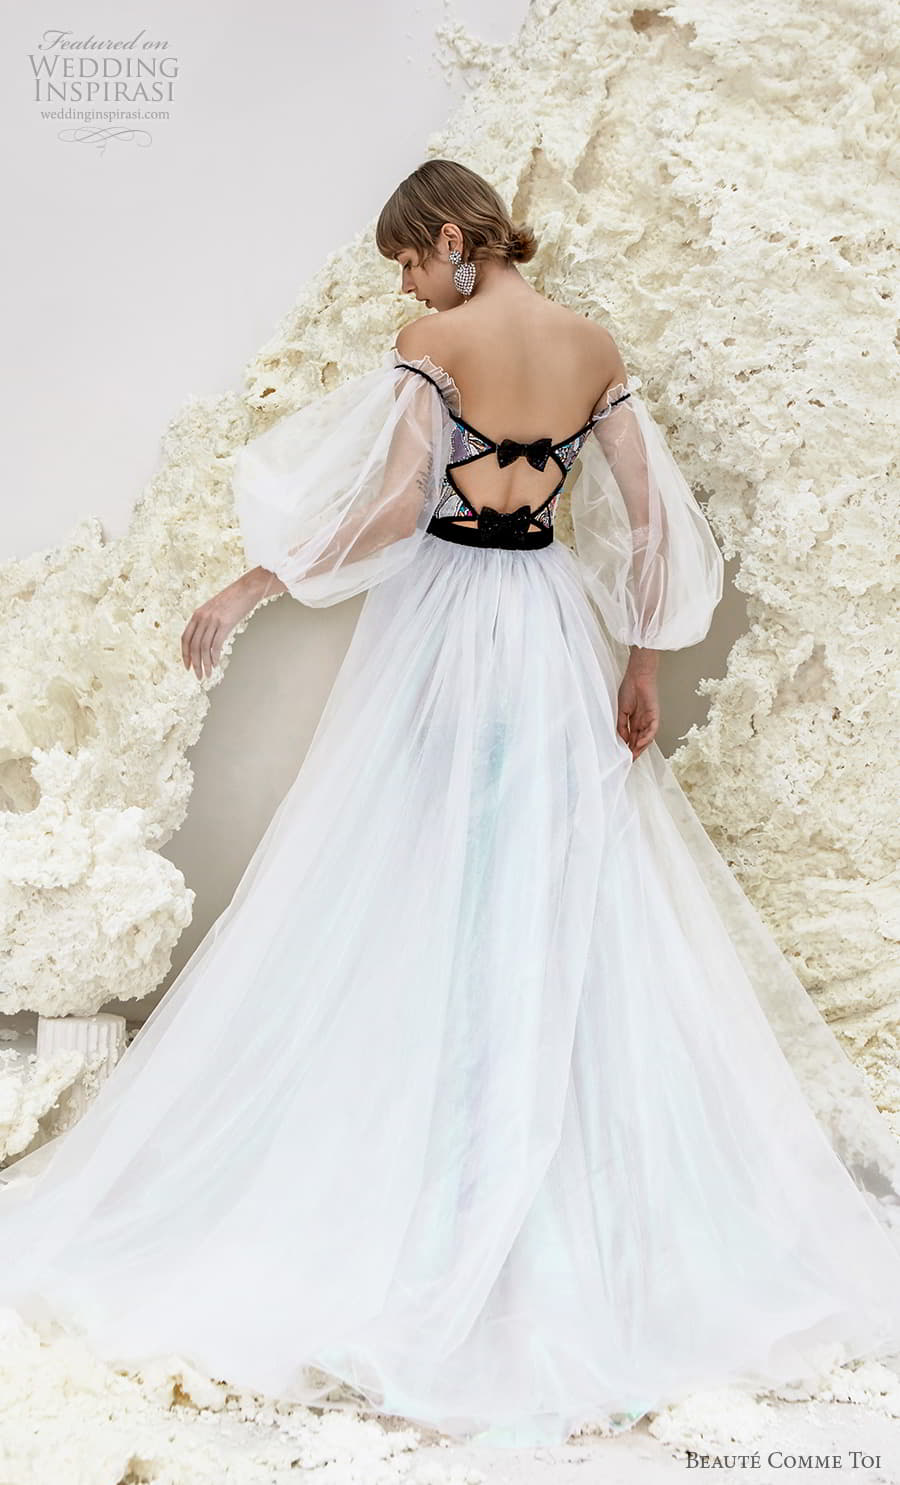 beaute comme toi spring 2022 bridal sheer bishop sleeves off shoulder semi sweetheart neckline cutout bodice a line ball gown wedding dress (isla) bv